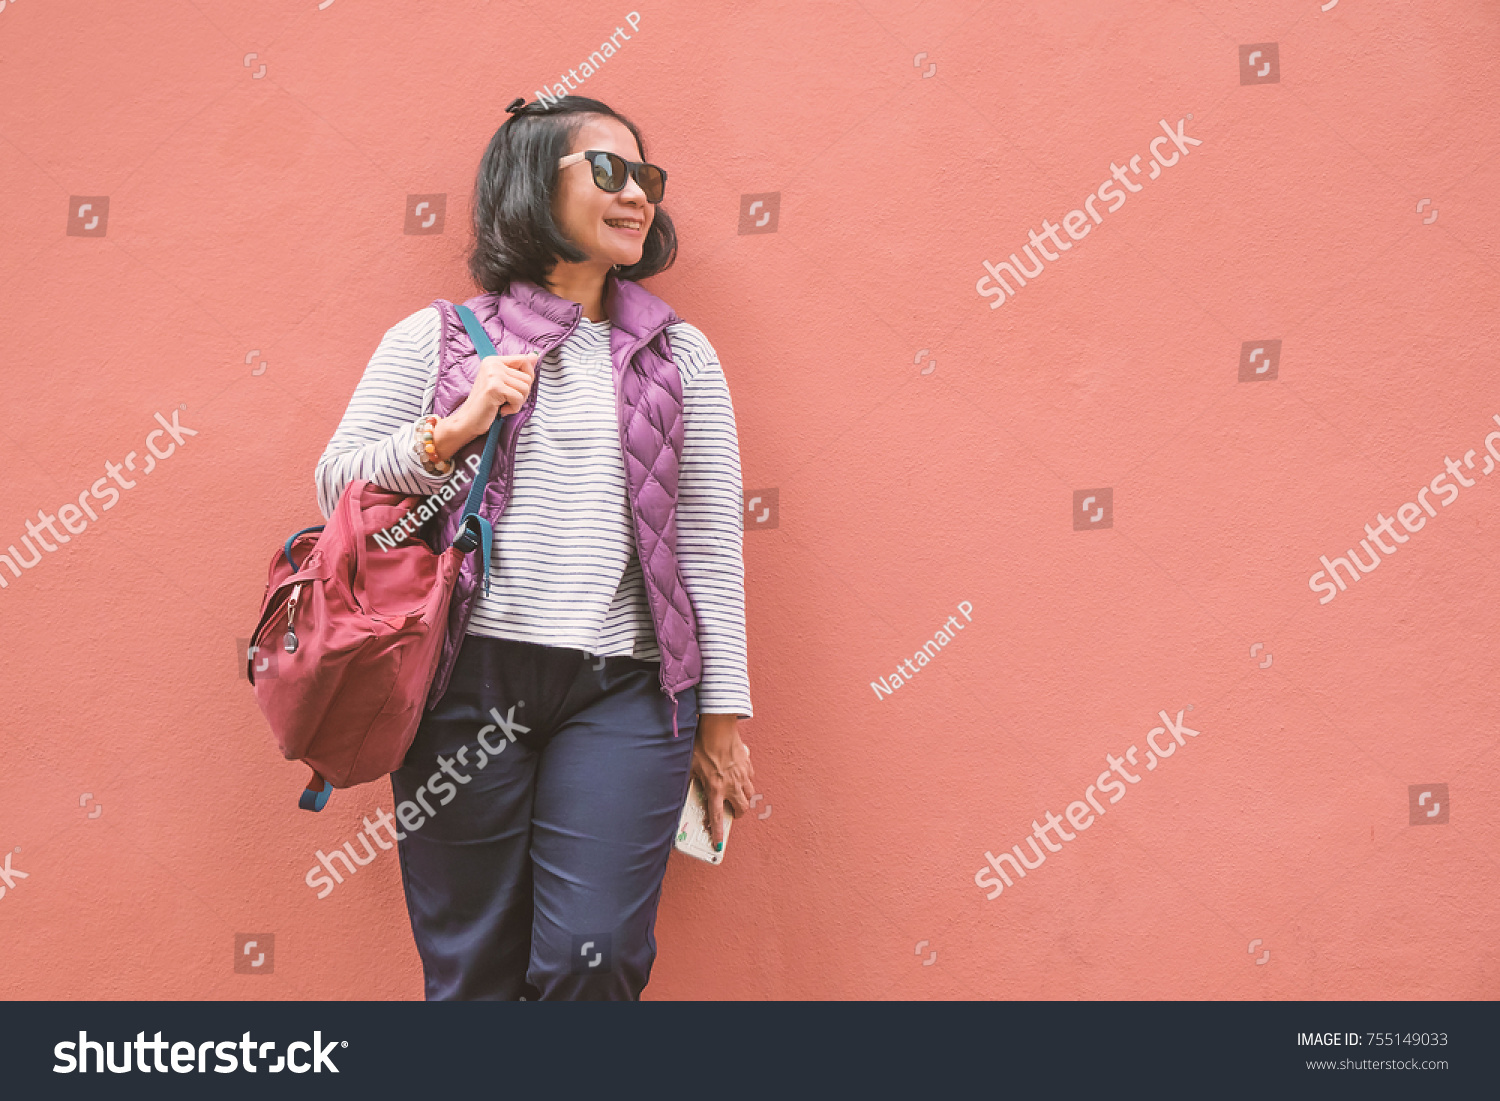 9f89cb568d10 Upper body portrait of an Asian woman carrying backpack and leaning on  orange concrete wall smiling